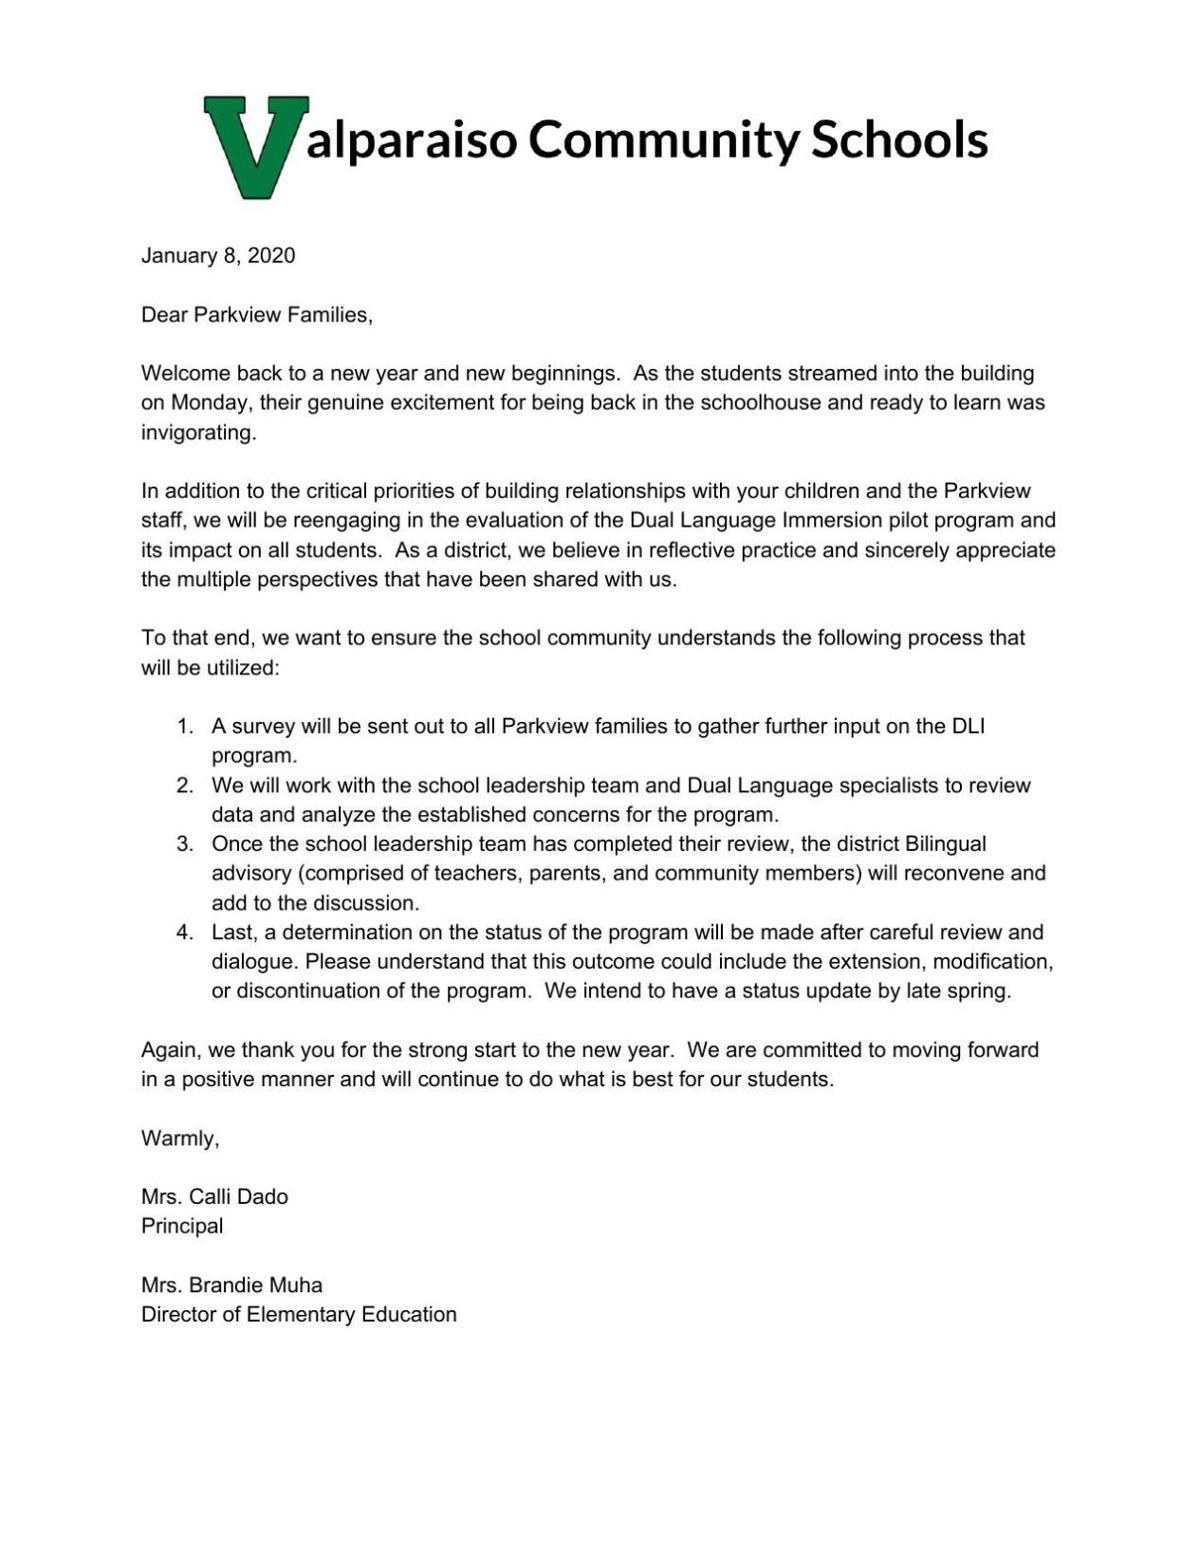 Valparaiso schools January 2020 letter to Parkview parents